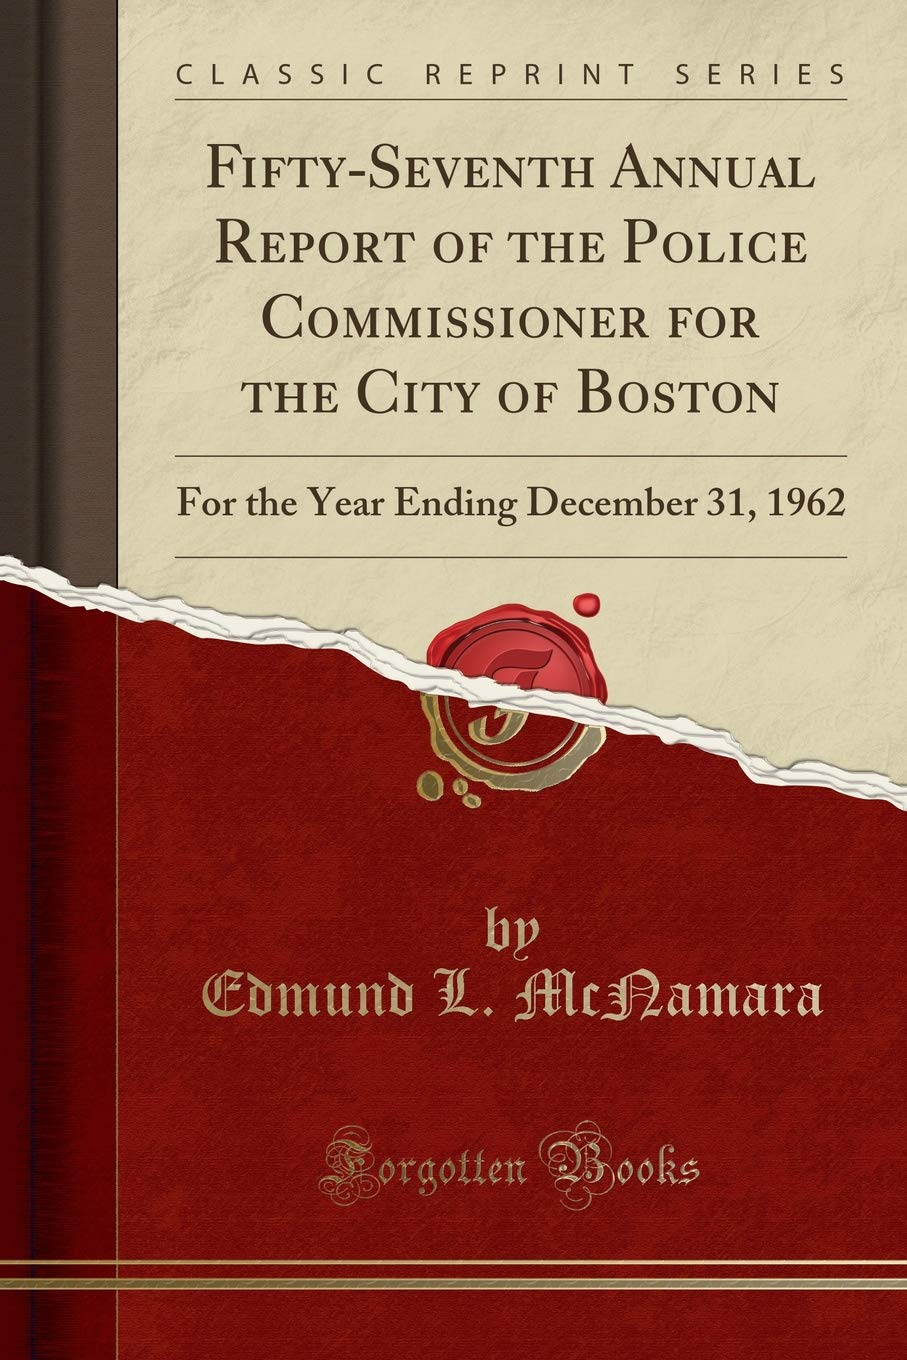 Download Fifty-Seventh Annual Report of the Police Commissioner for the City of Boston: For the Year Ending December 31, 1962 (Classic Reprint) pdf epub